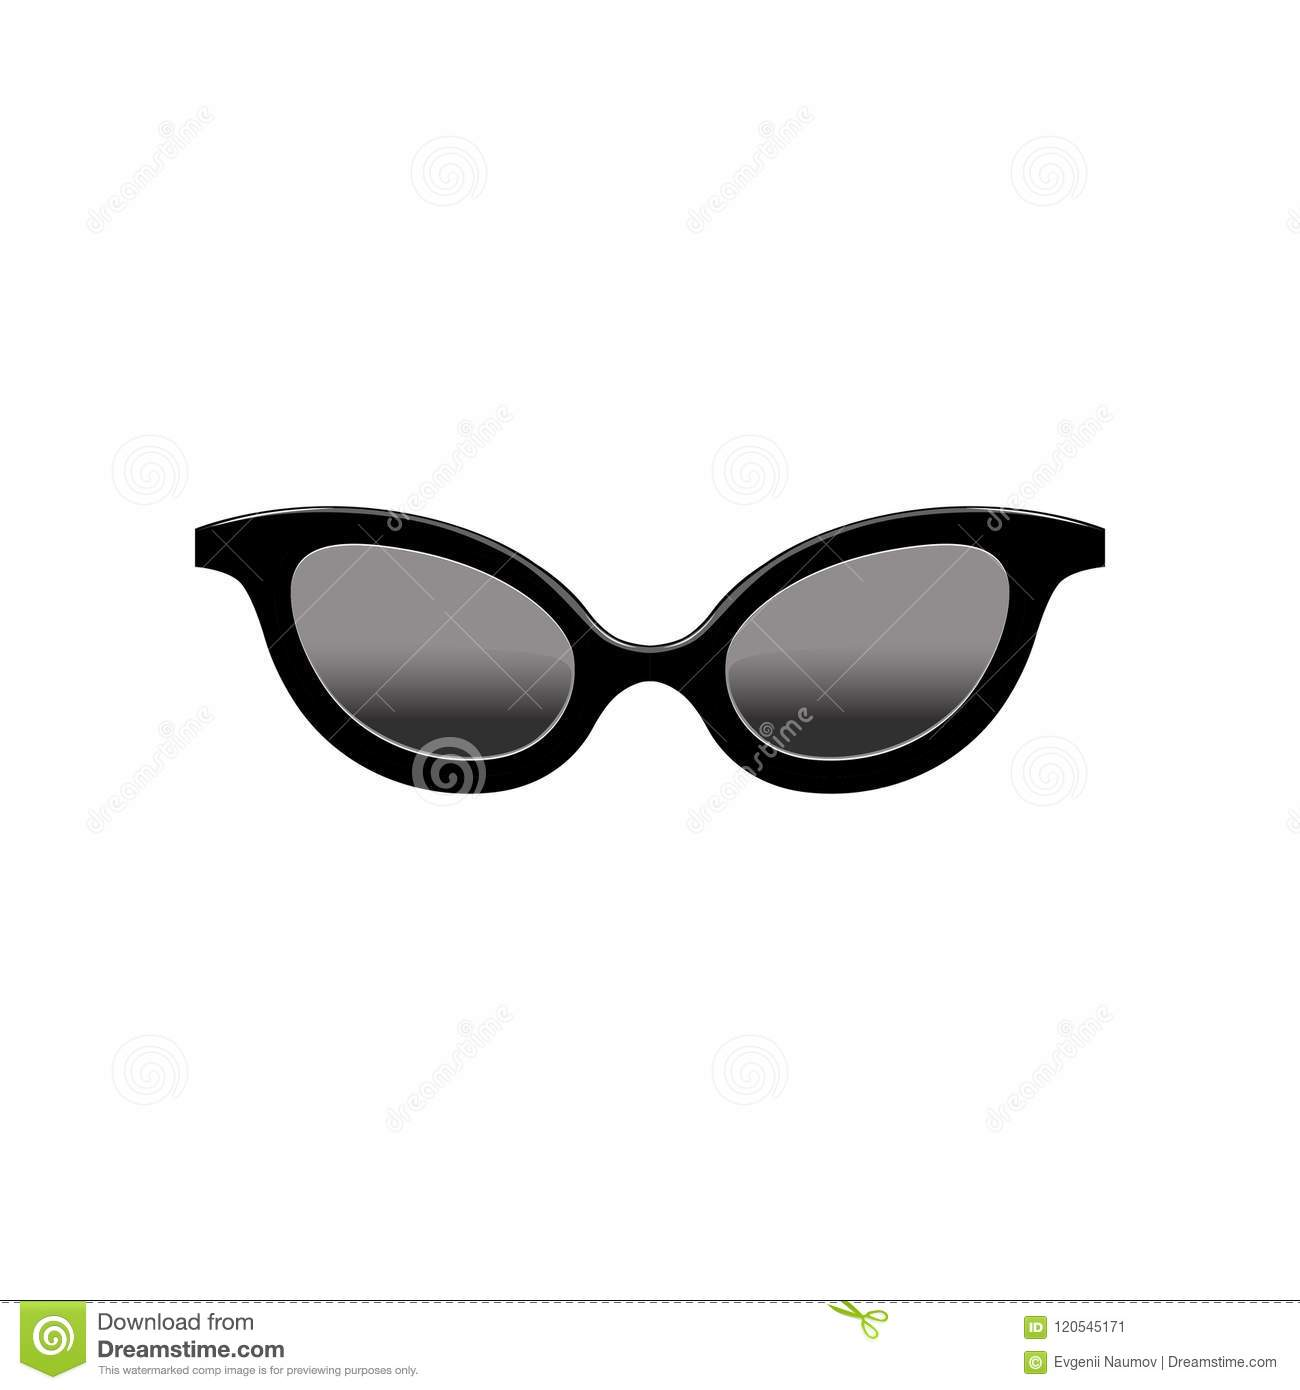 cbf1a38b73 Cartoon style icon of retro women`s cat eye sunglasses with black lenses  and plastic frame. Fashion accessory. Element for mobile application.